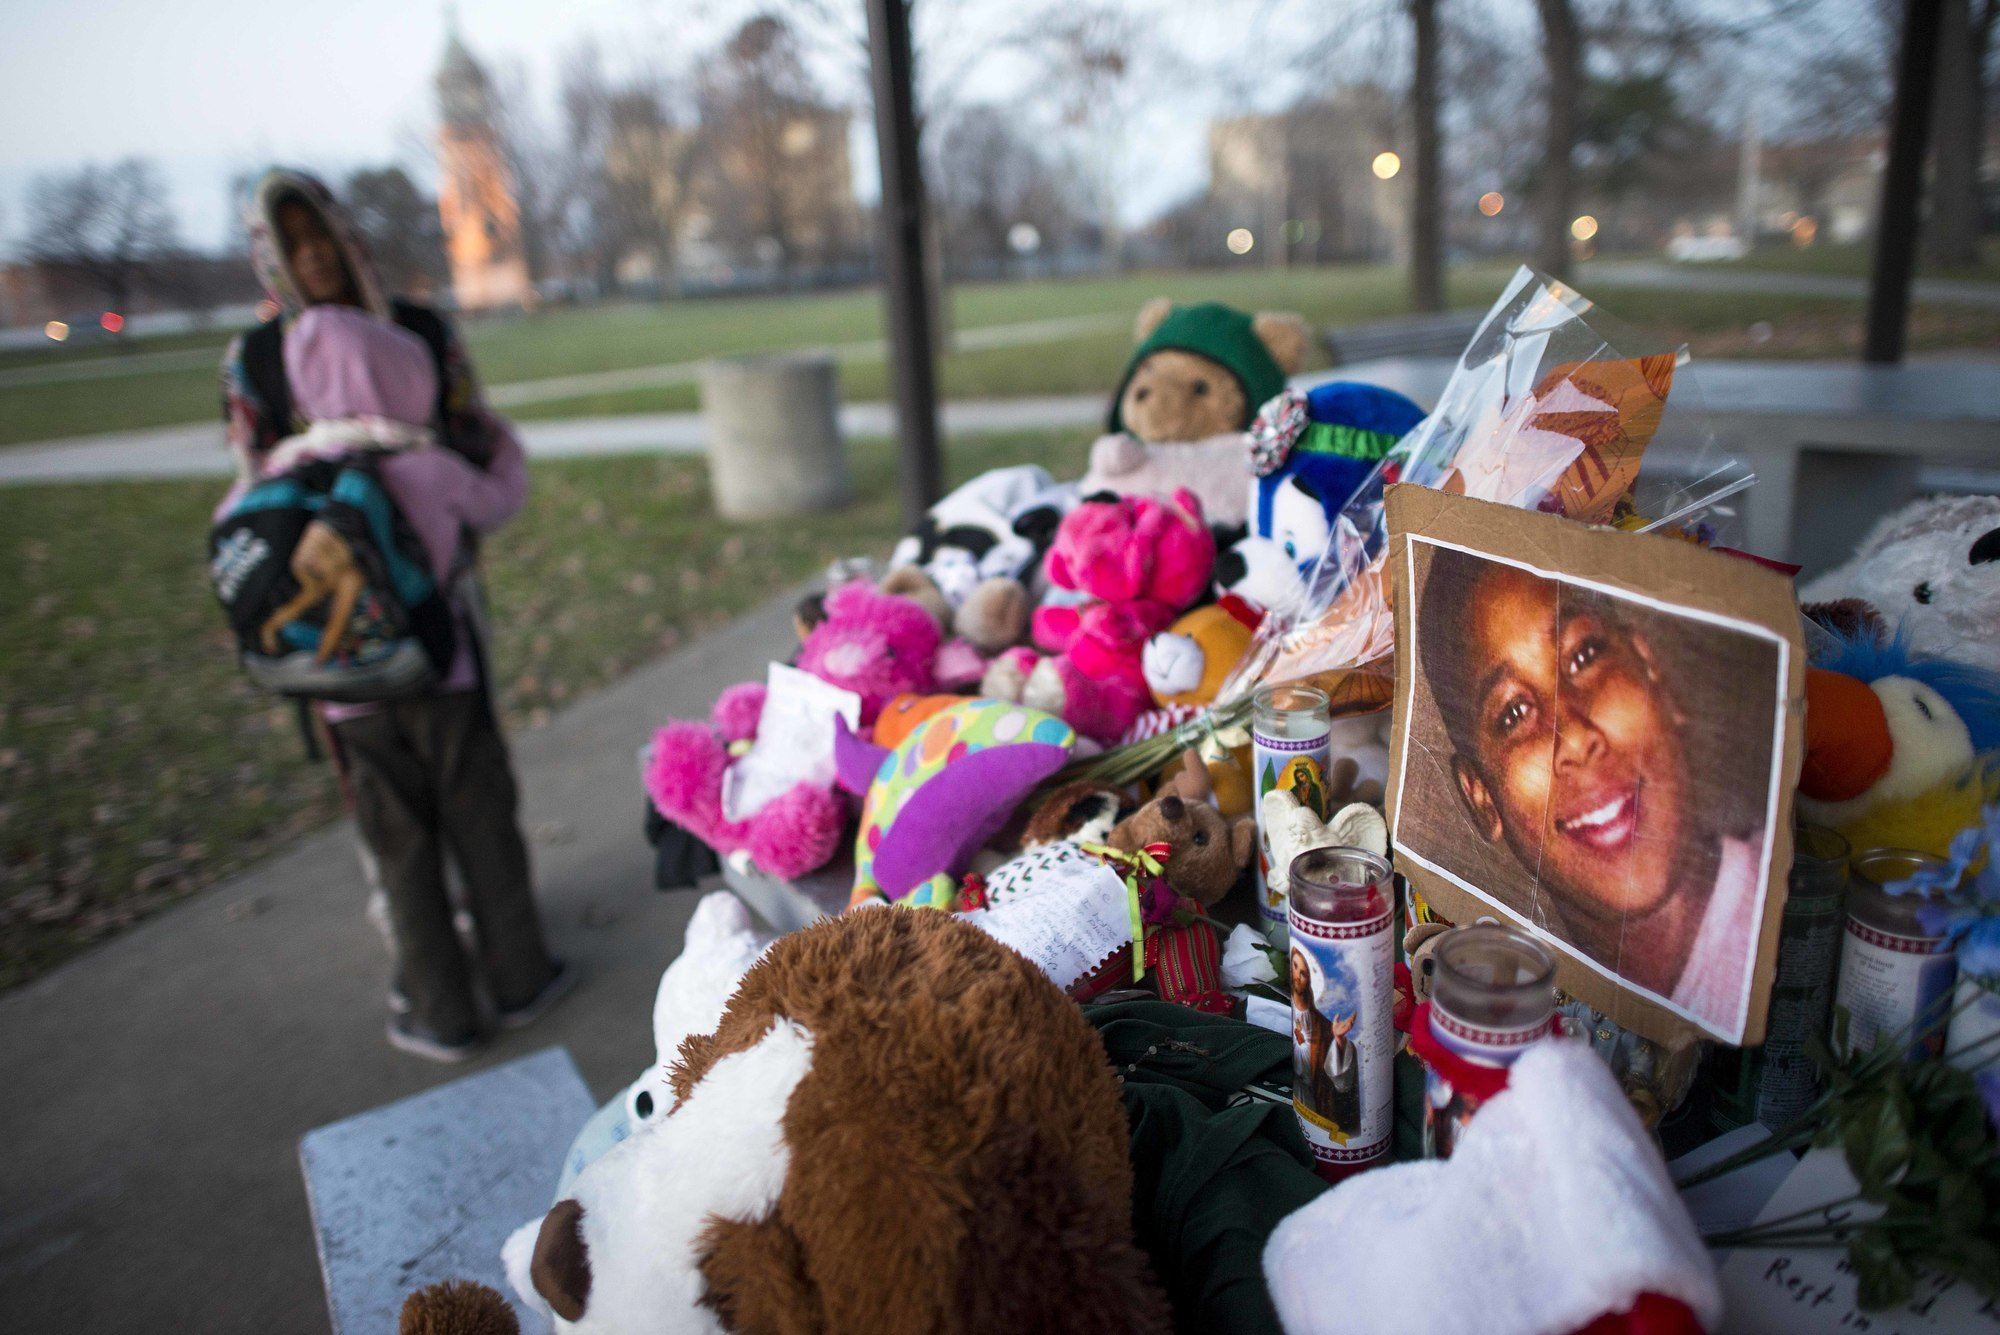 A memorial site dedicated to Tamir Rice at Cudell Commons Park, where a police officer fatally shot the 12-year-old boy in 2014.